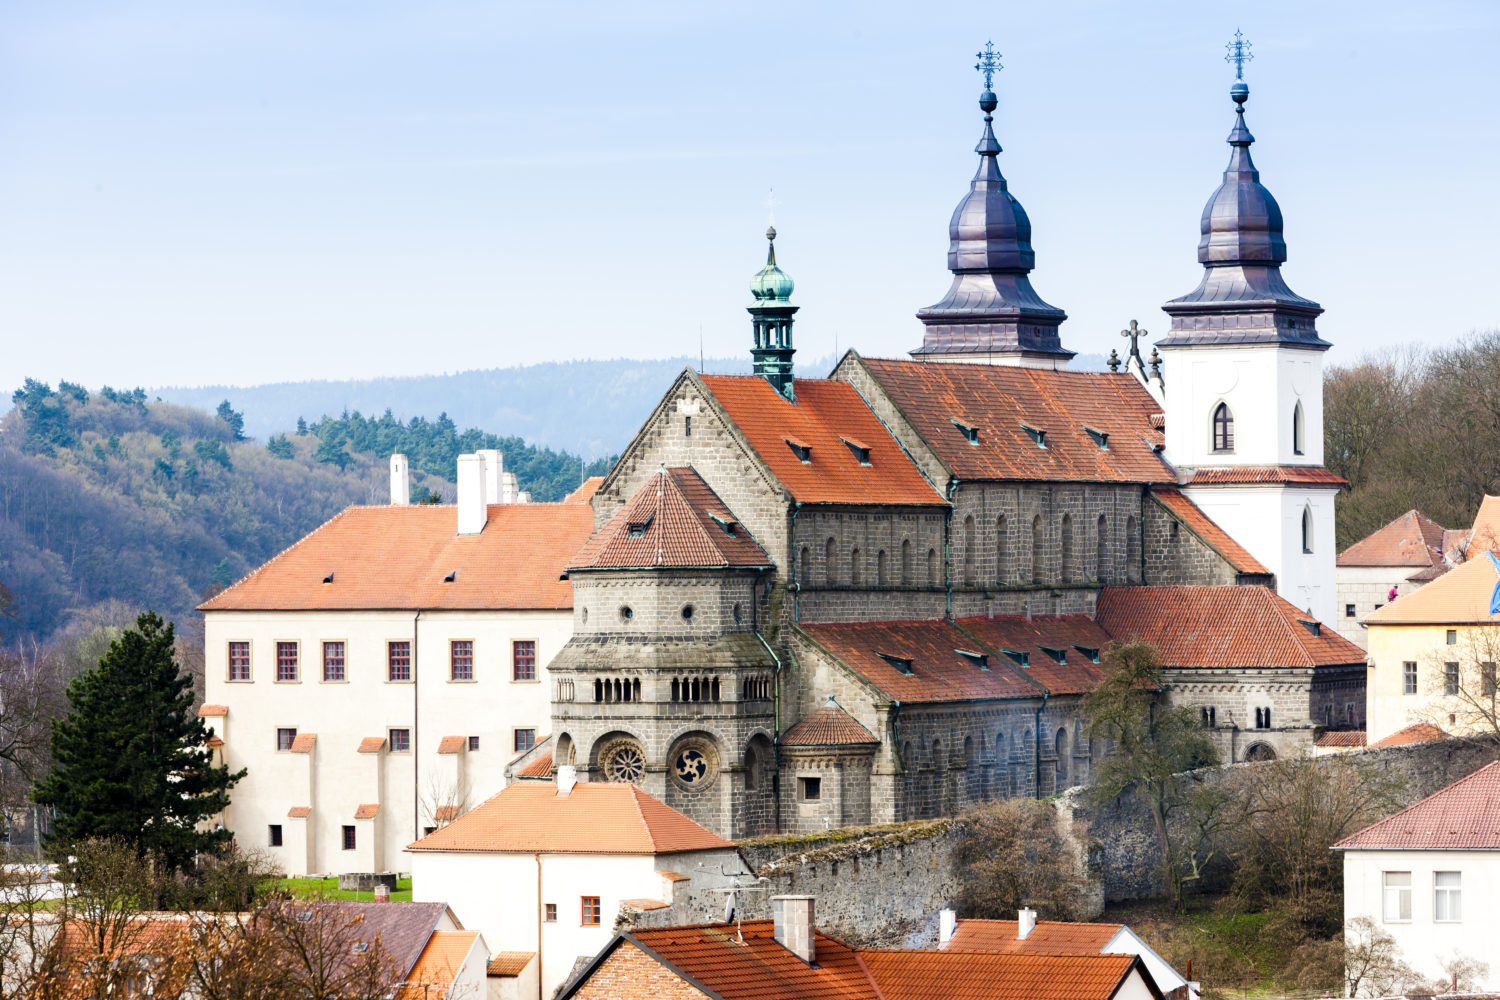 Road trip from Prague to Bratislava through St. Procopius Basilica, Trebic in Czech Republic